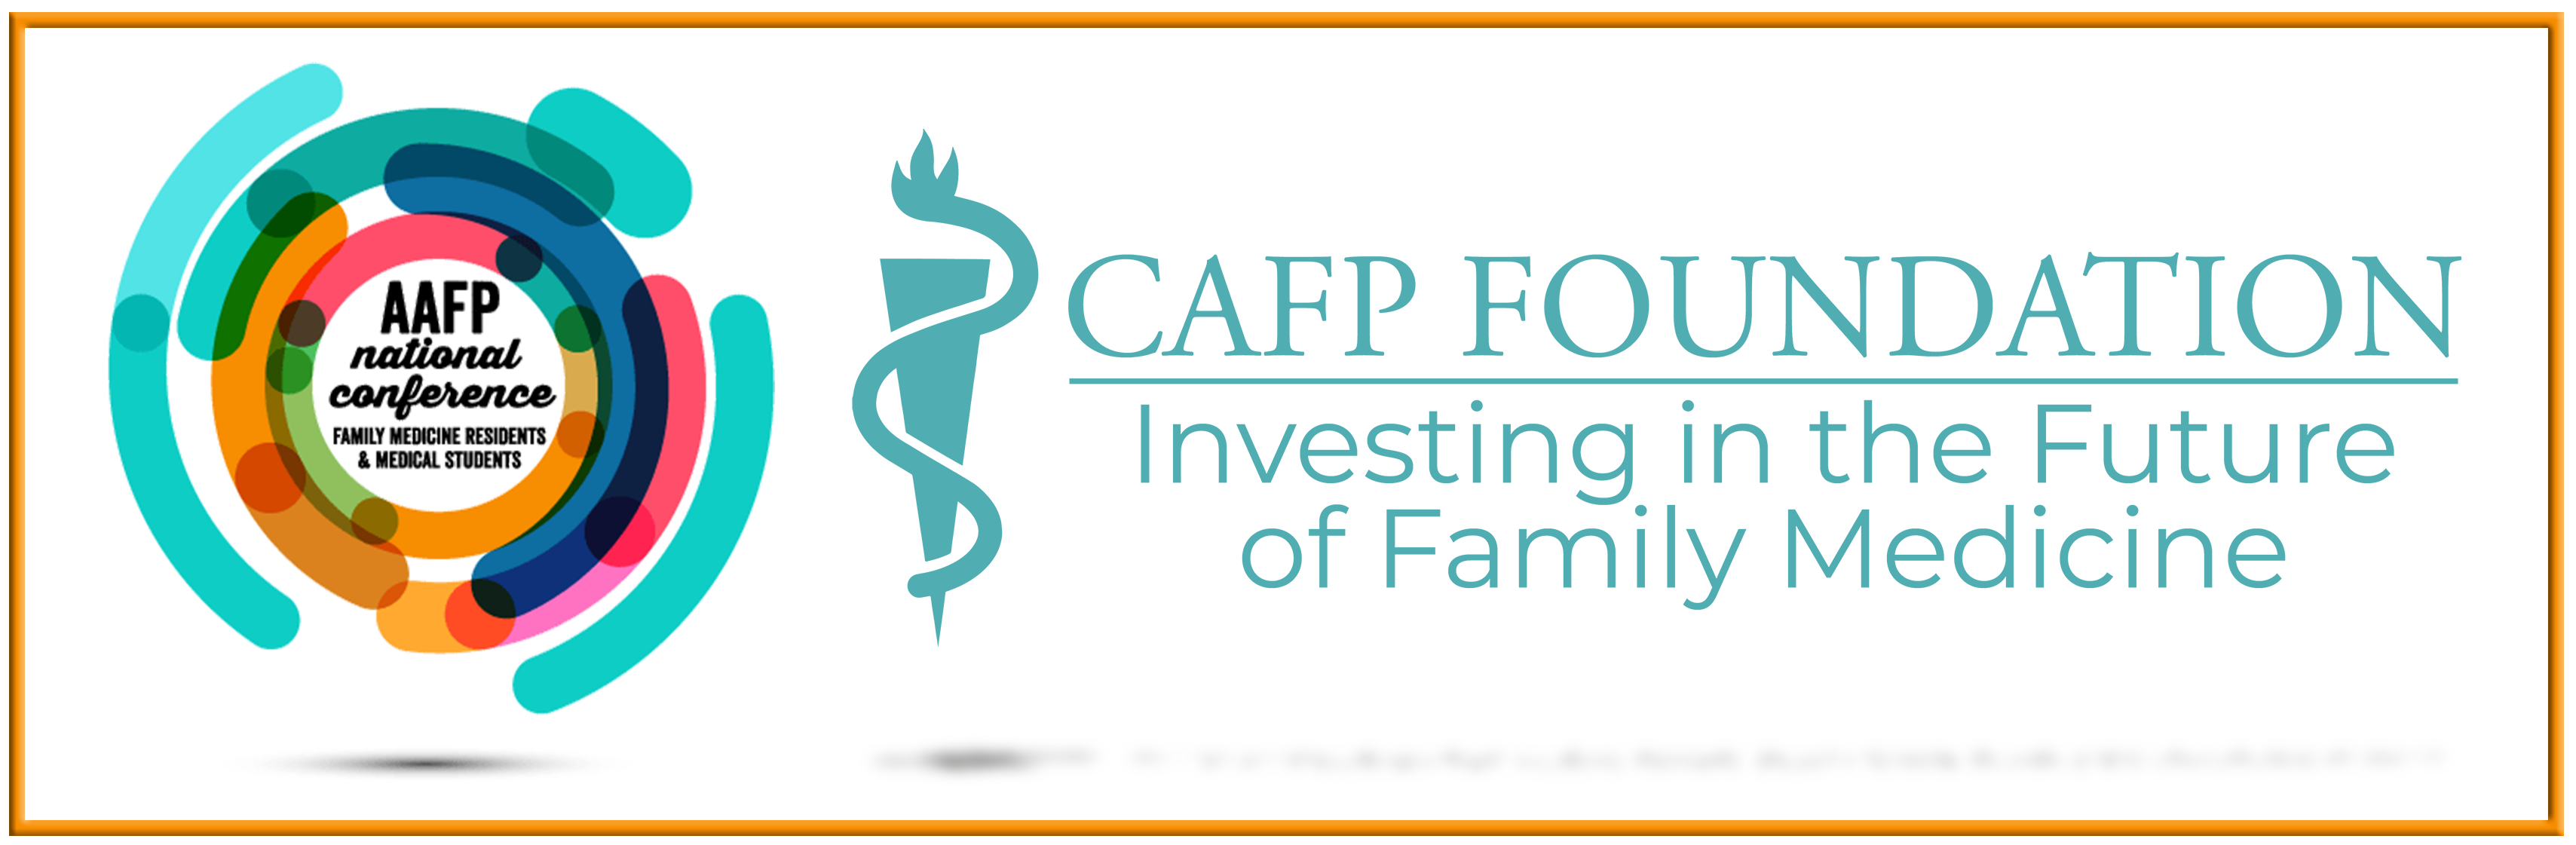 NCRS CAFP Foundation logos